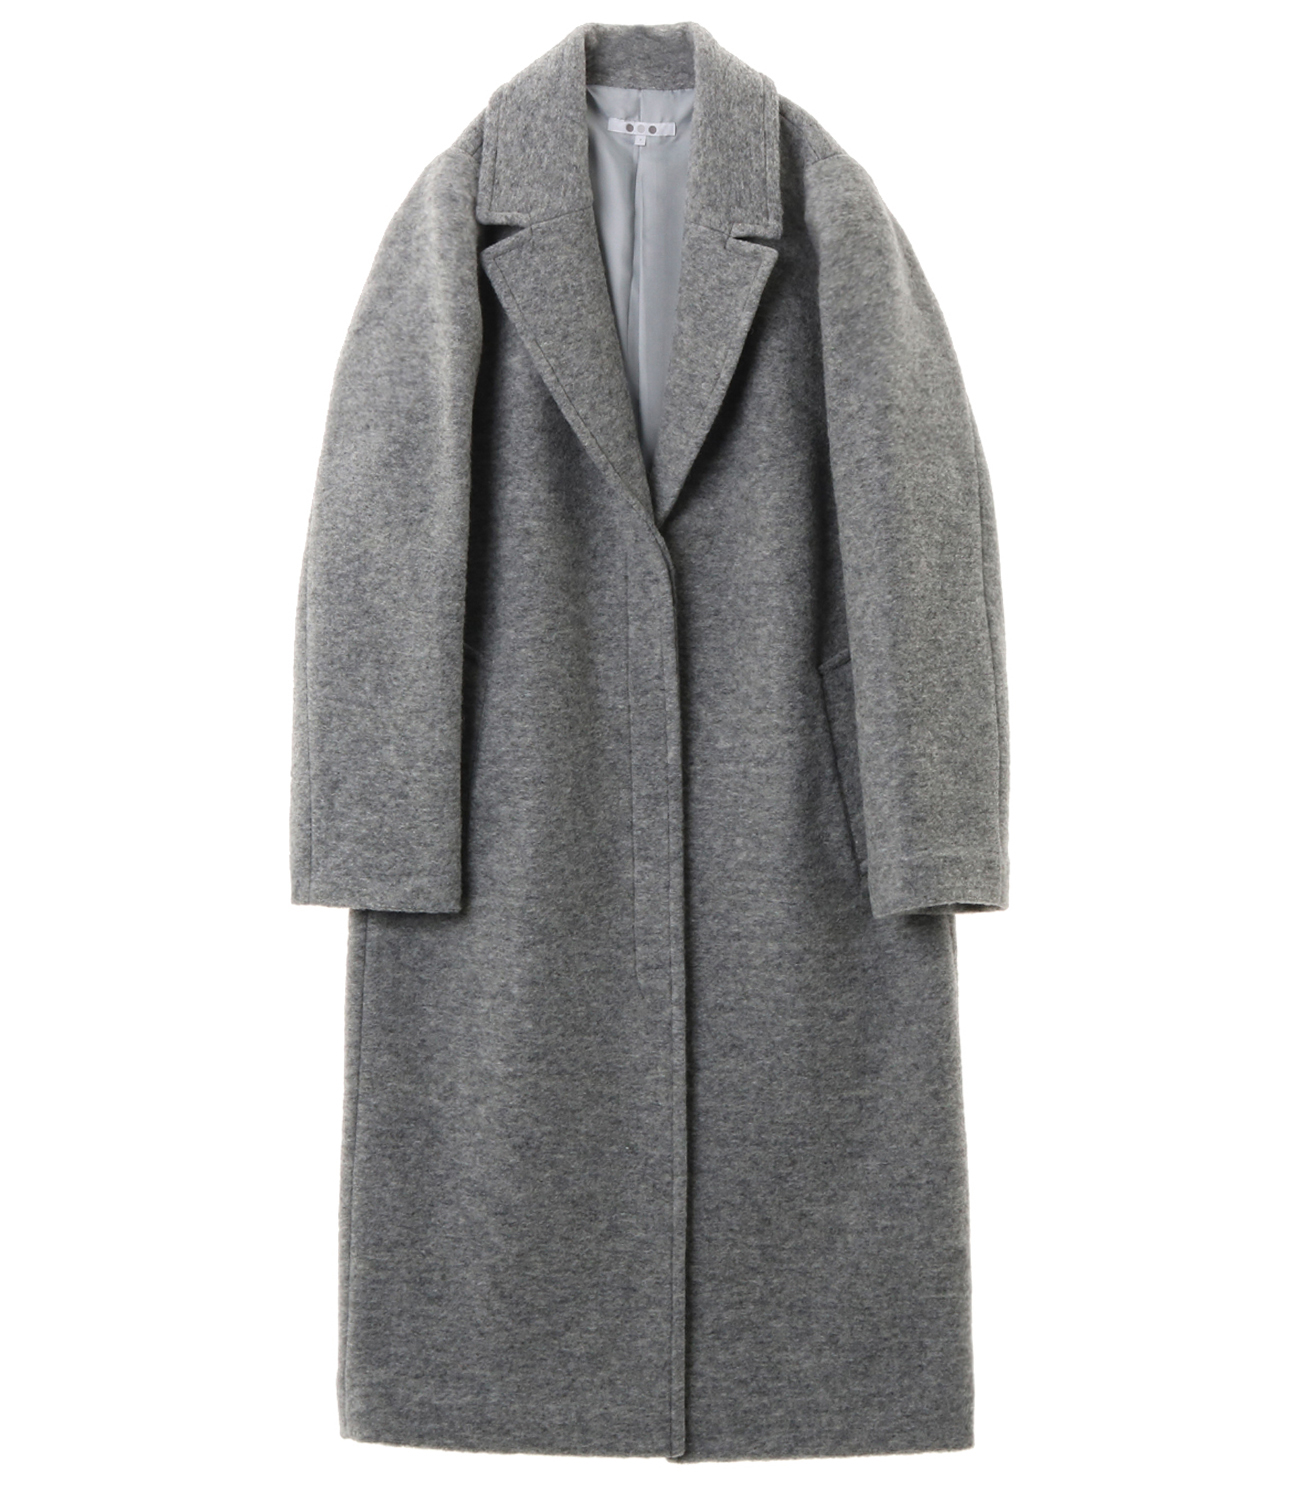 sliver knit chester coat 詳細画像 grey 1